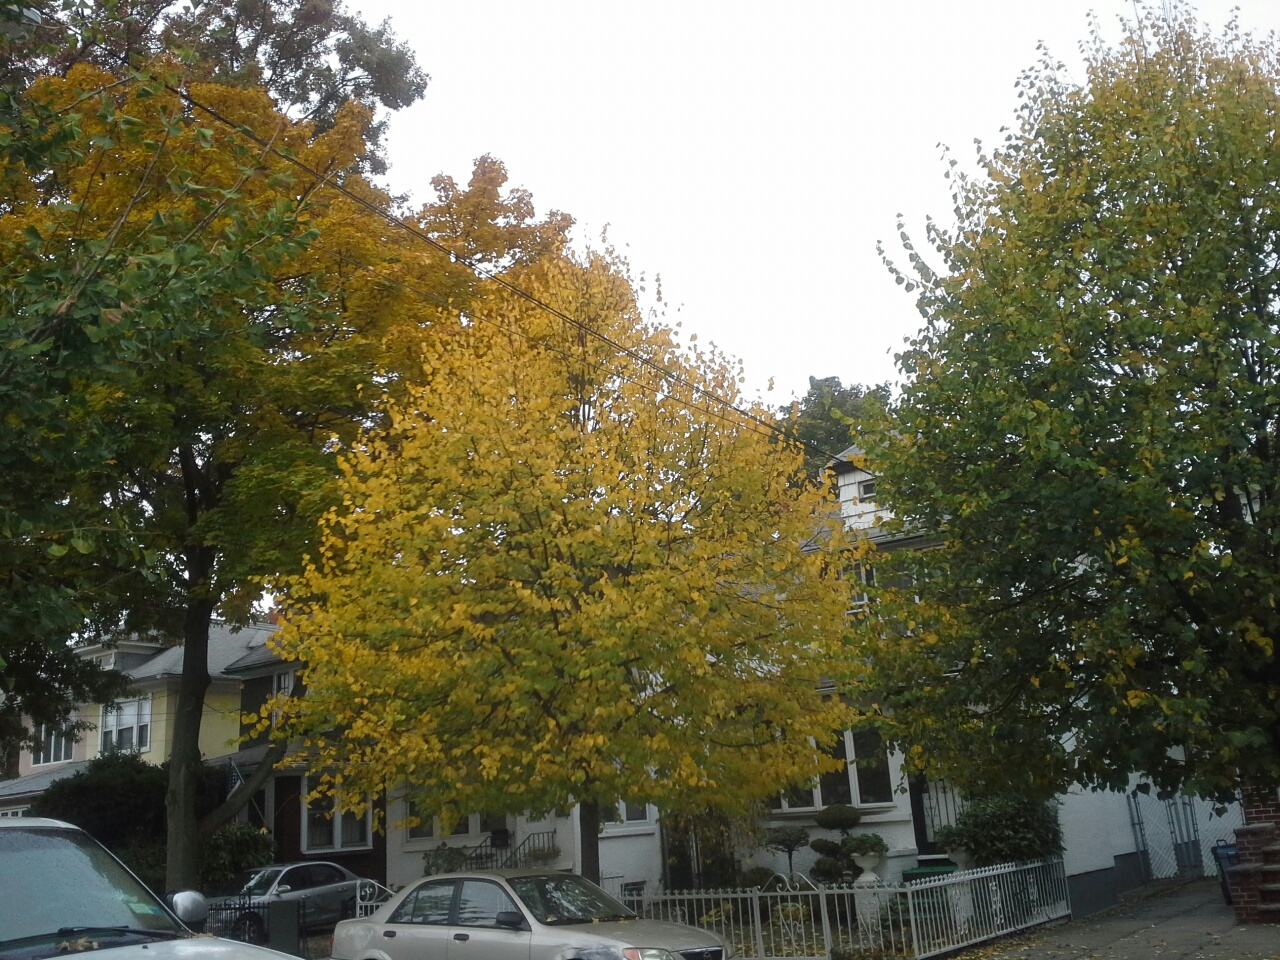 Autumn in East Flatbush Brooklyn New York